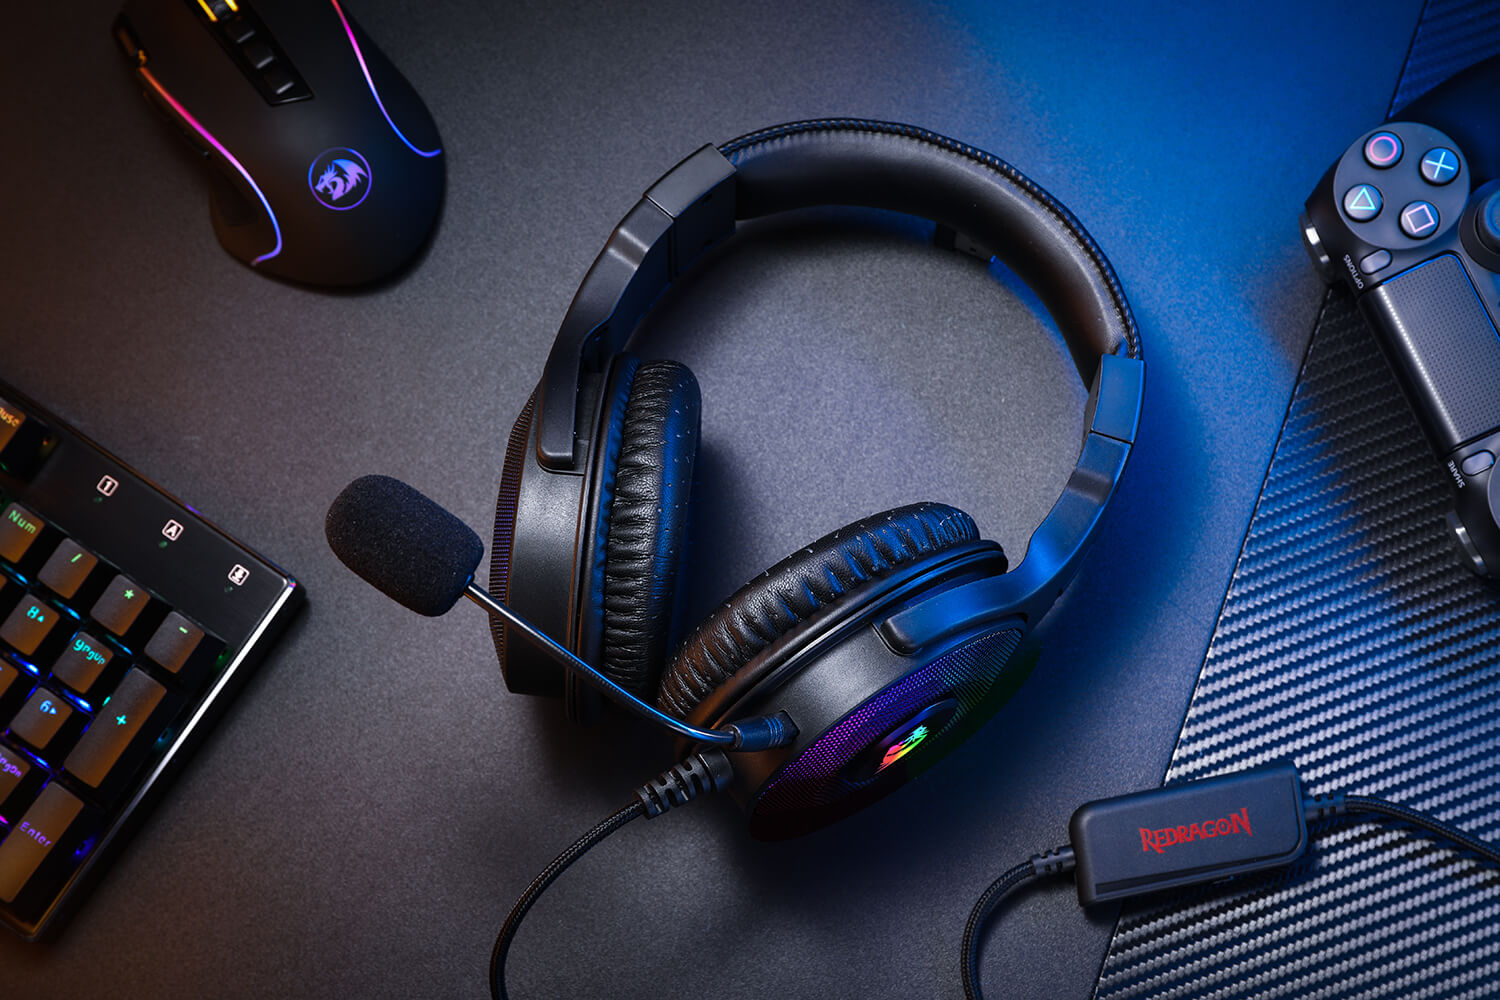 redragon Gaming Headset with Detachable Clear Mic